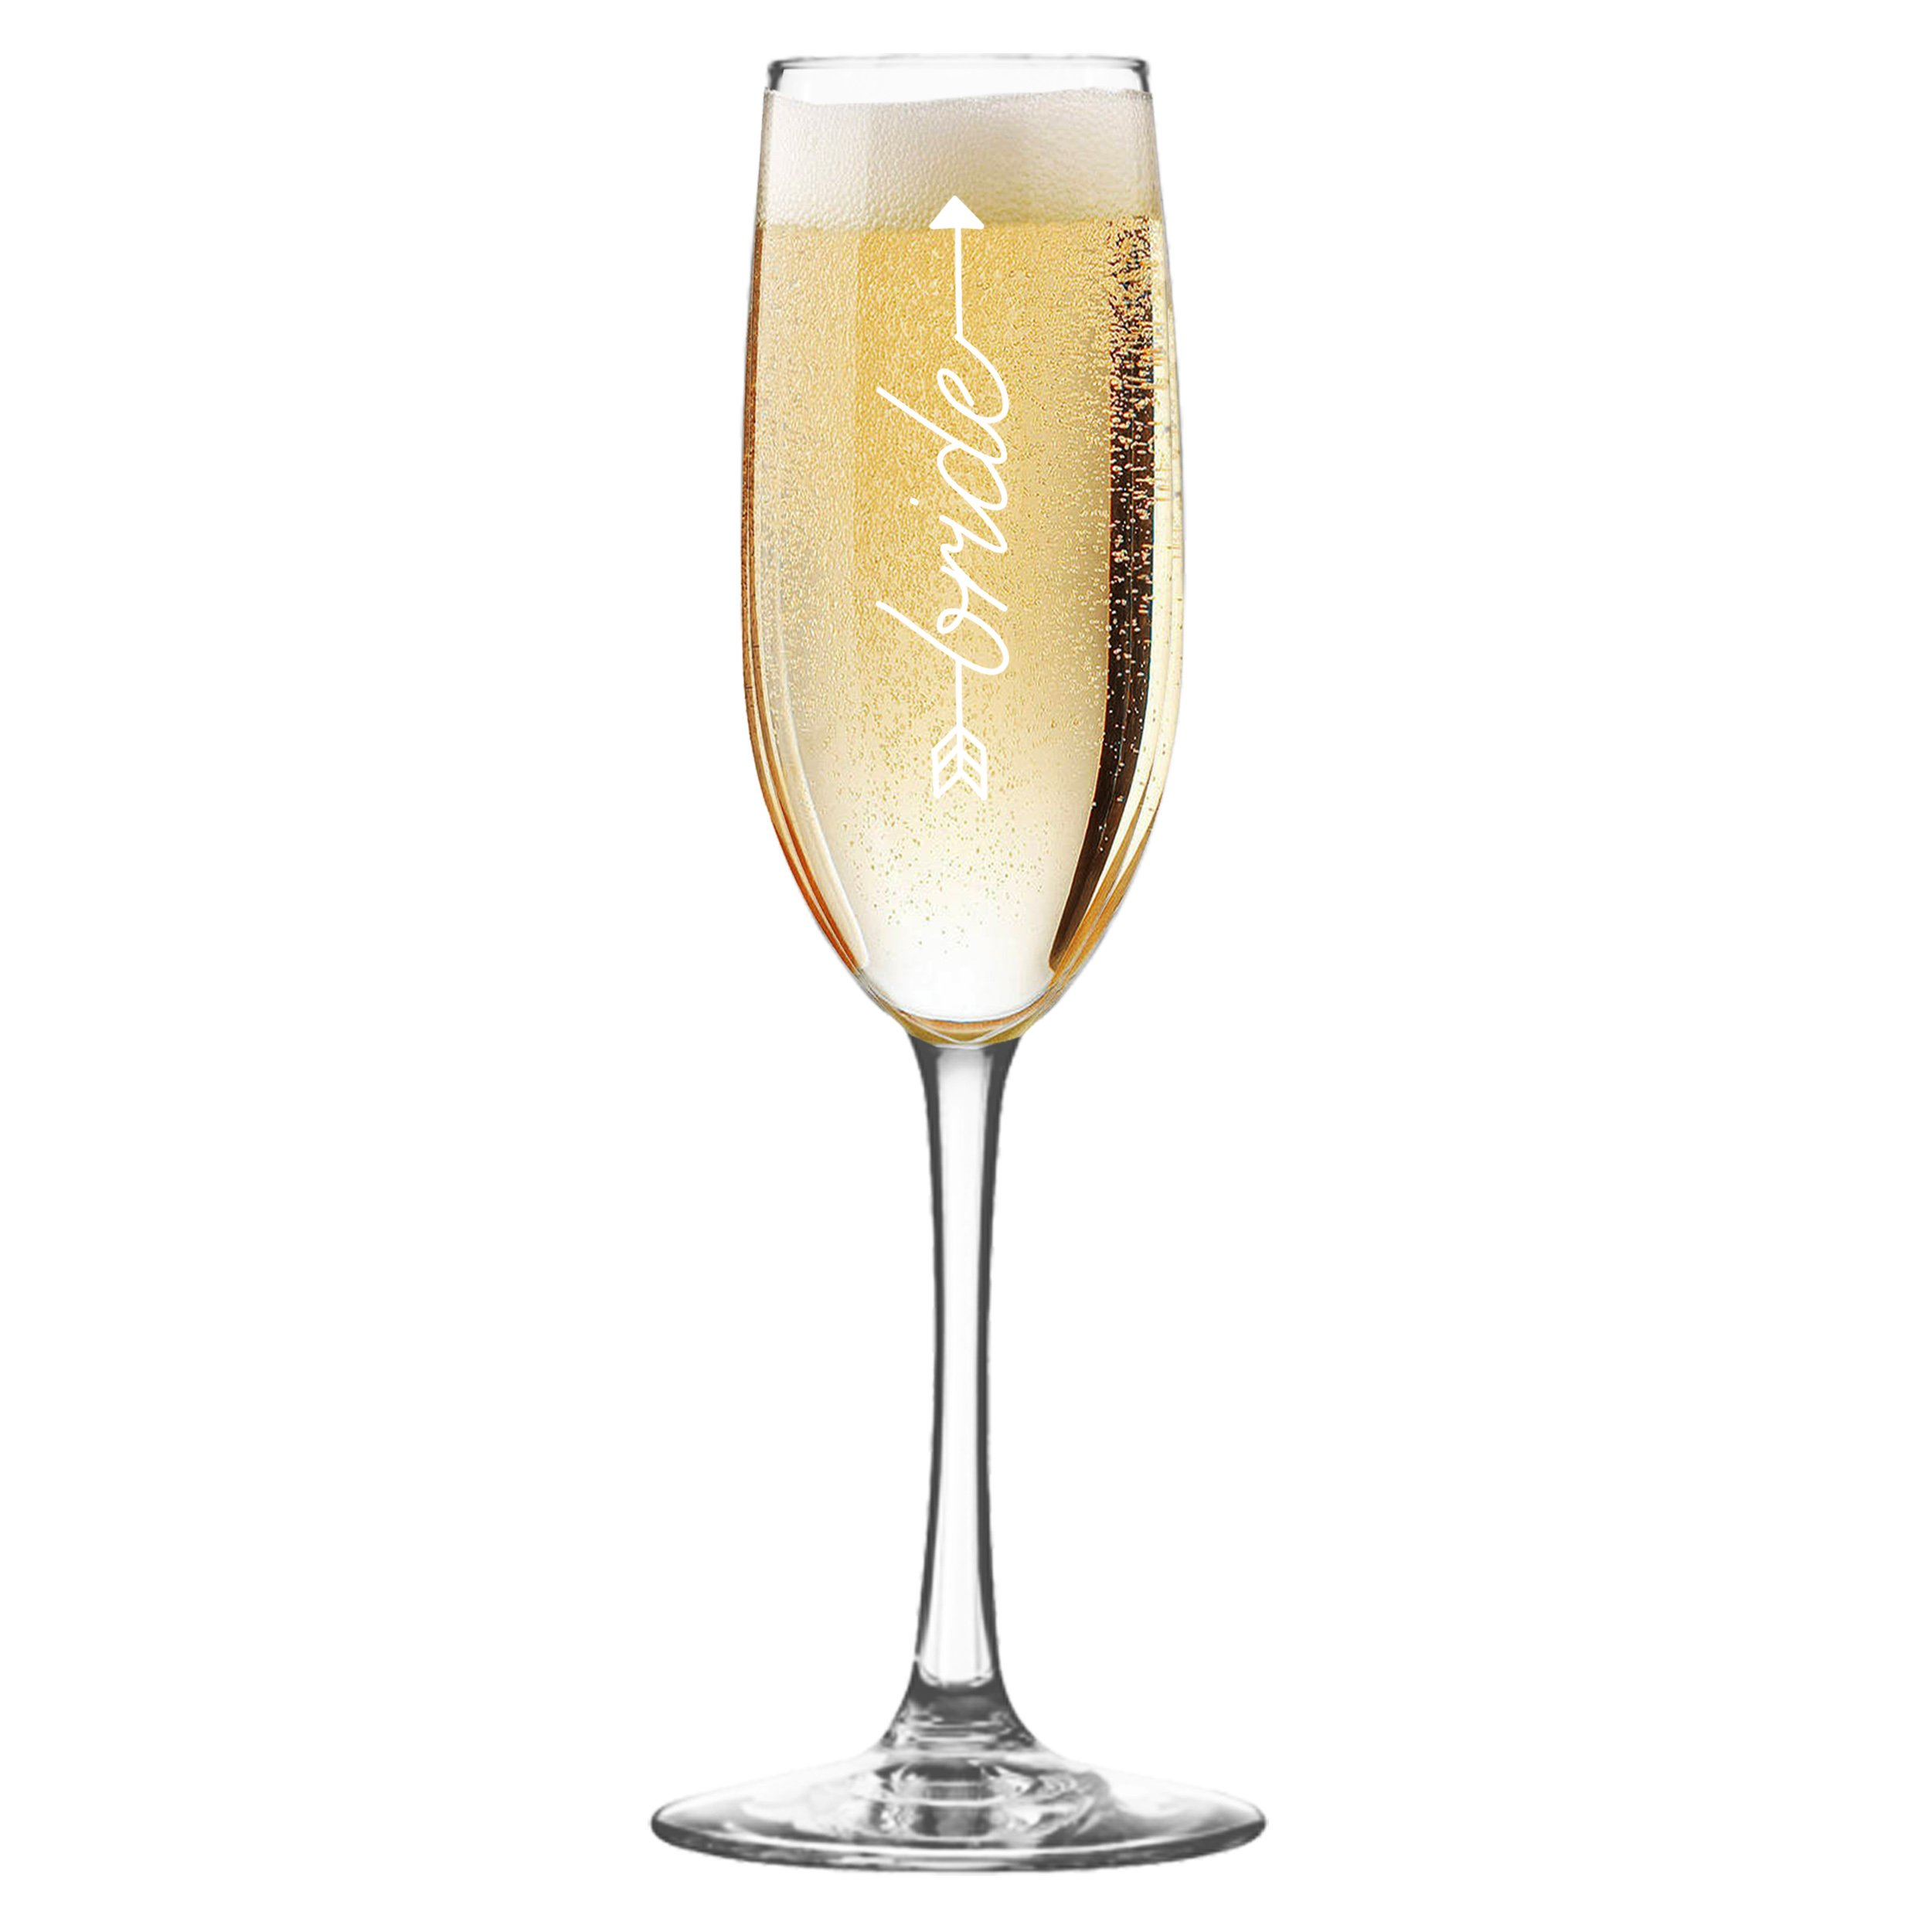 Wedding Party Champagne Flutes - Etched Toasting Bachelorette Flute Glass Gift Favors (Arrow Style. Bride Clear Glass)